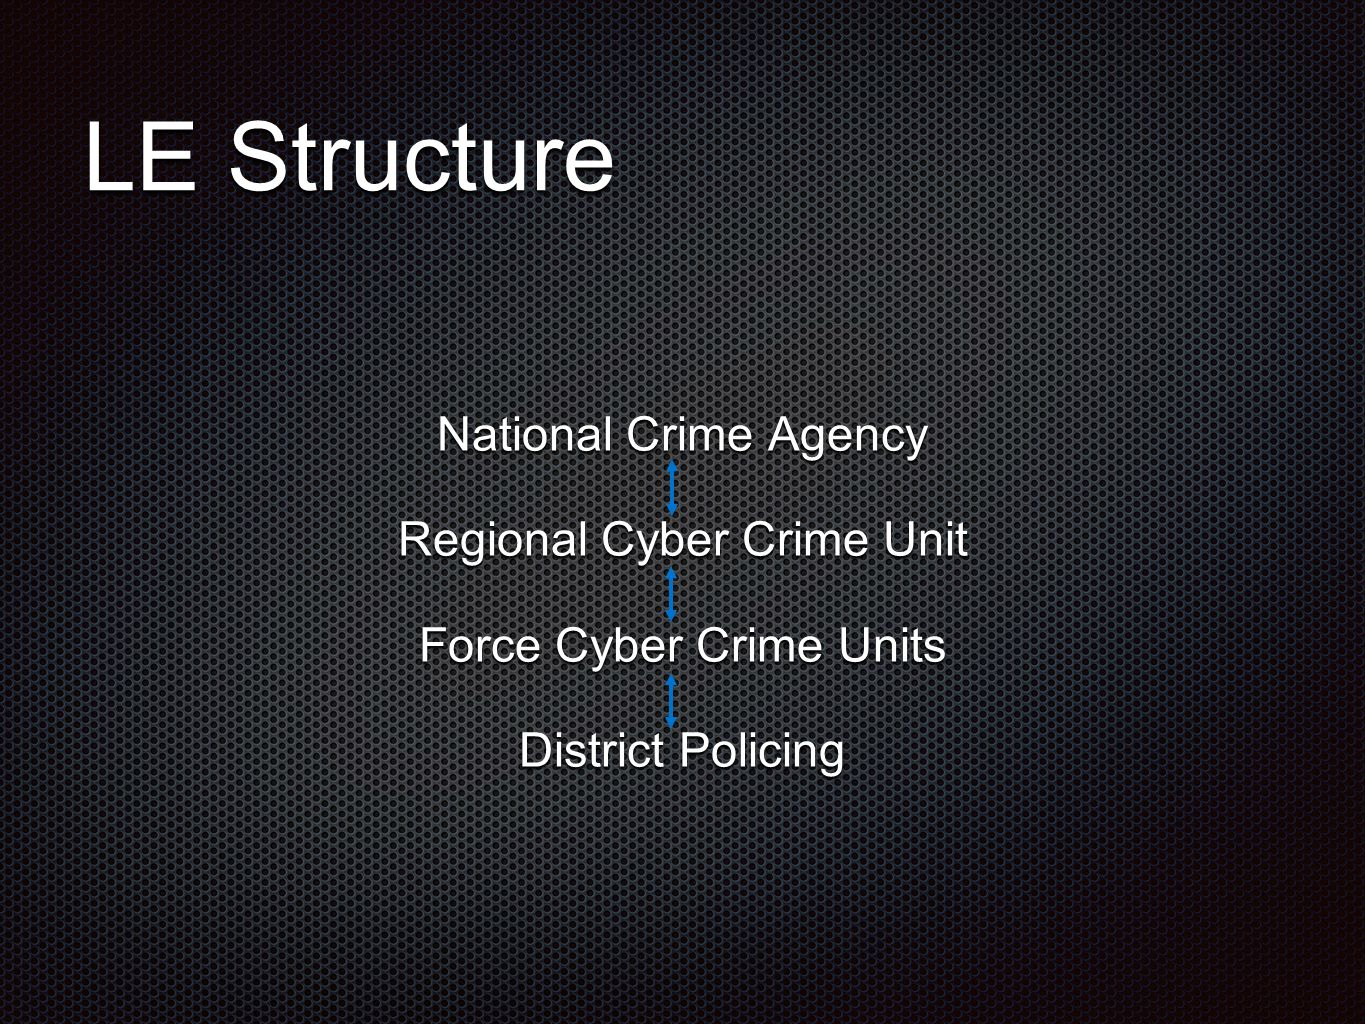 HSM 438 Week 5 Final Paper: Cyber Crime Task Force Plan